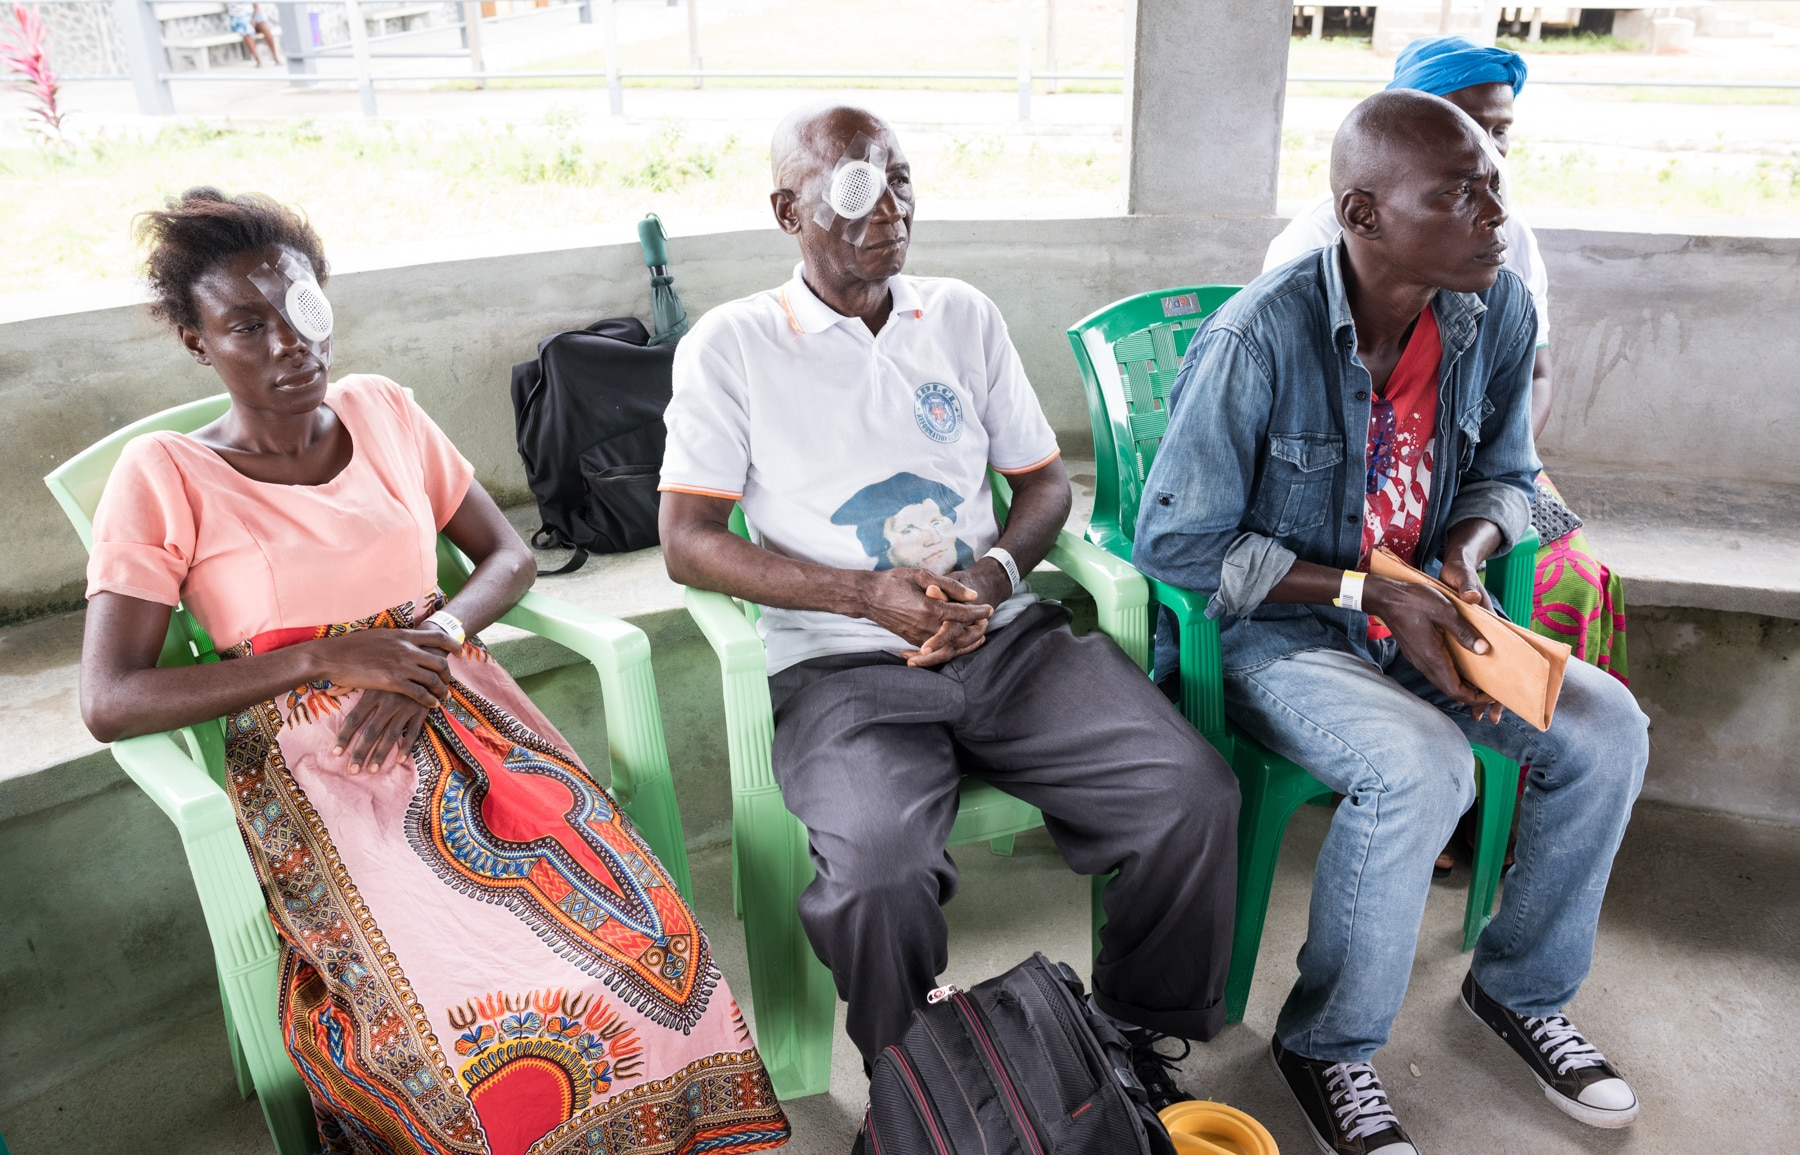 Three patients wearing eye patches sitting and waiting in open-air room (Joshua Yospyn/JSL)